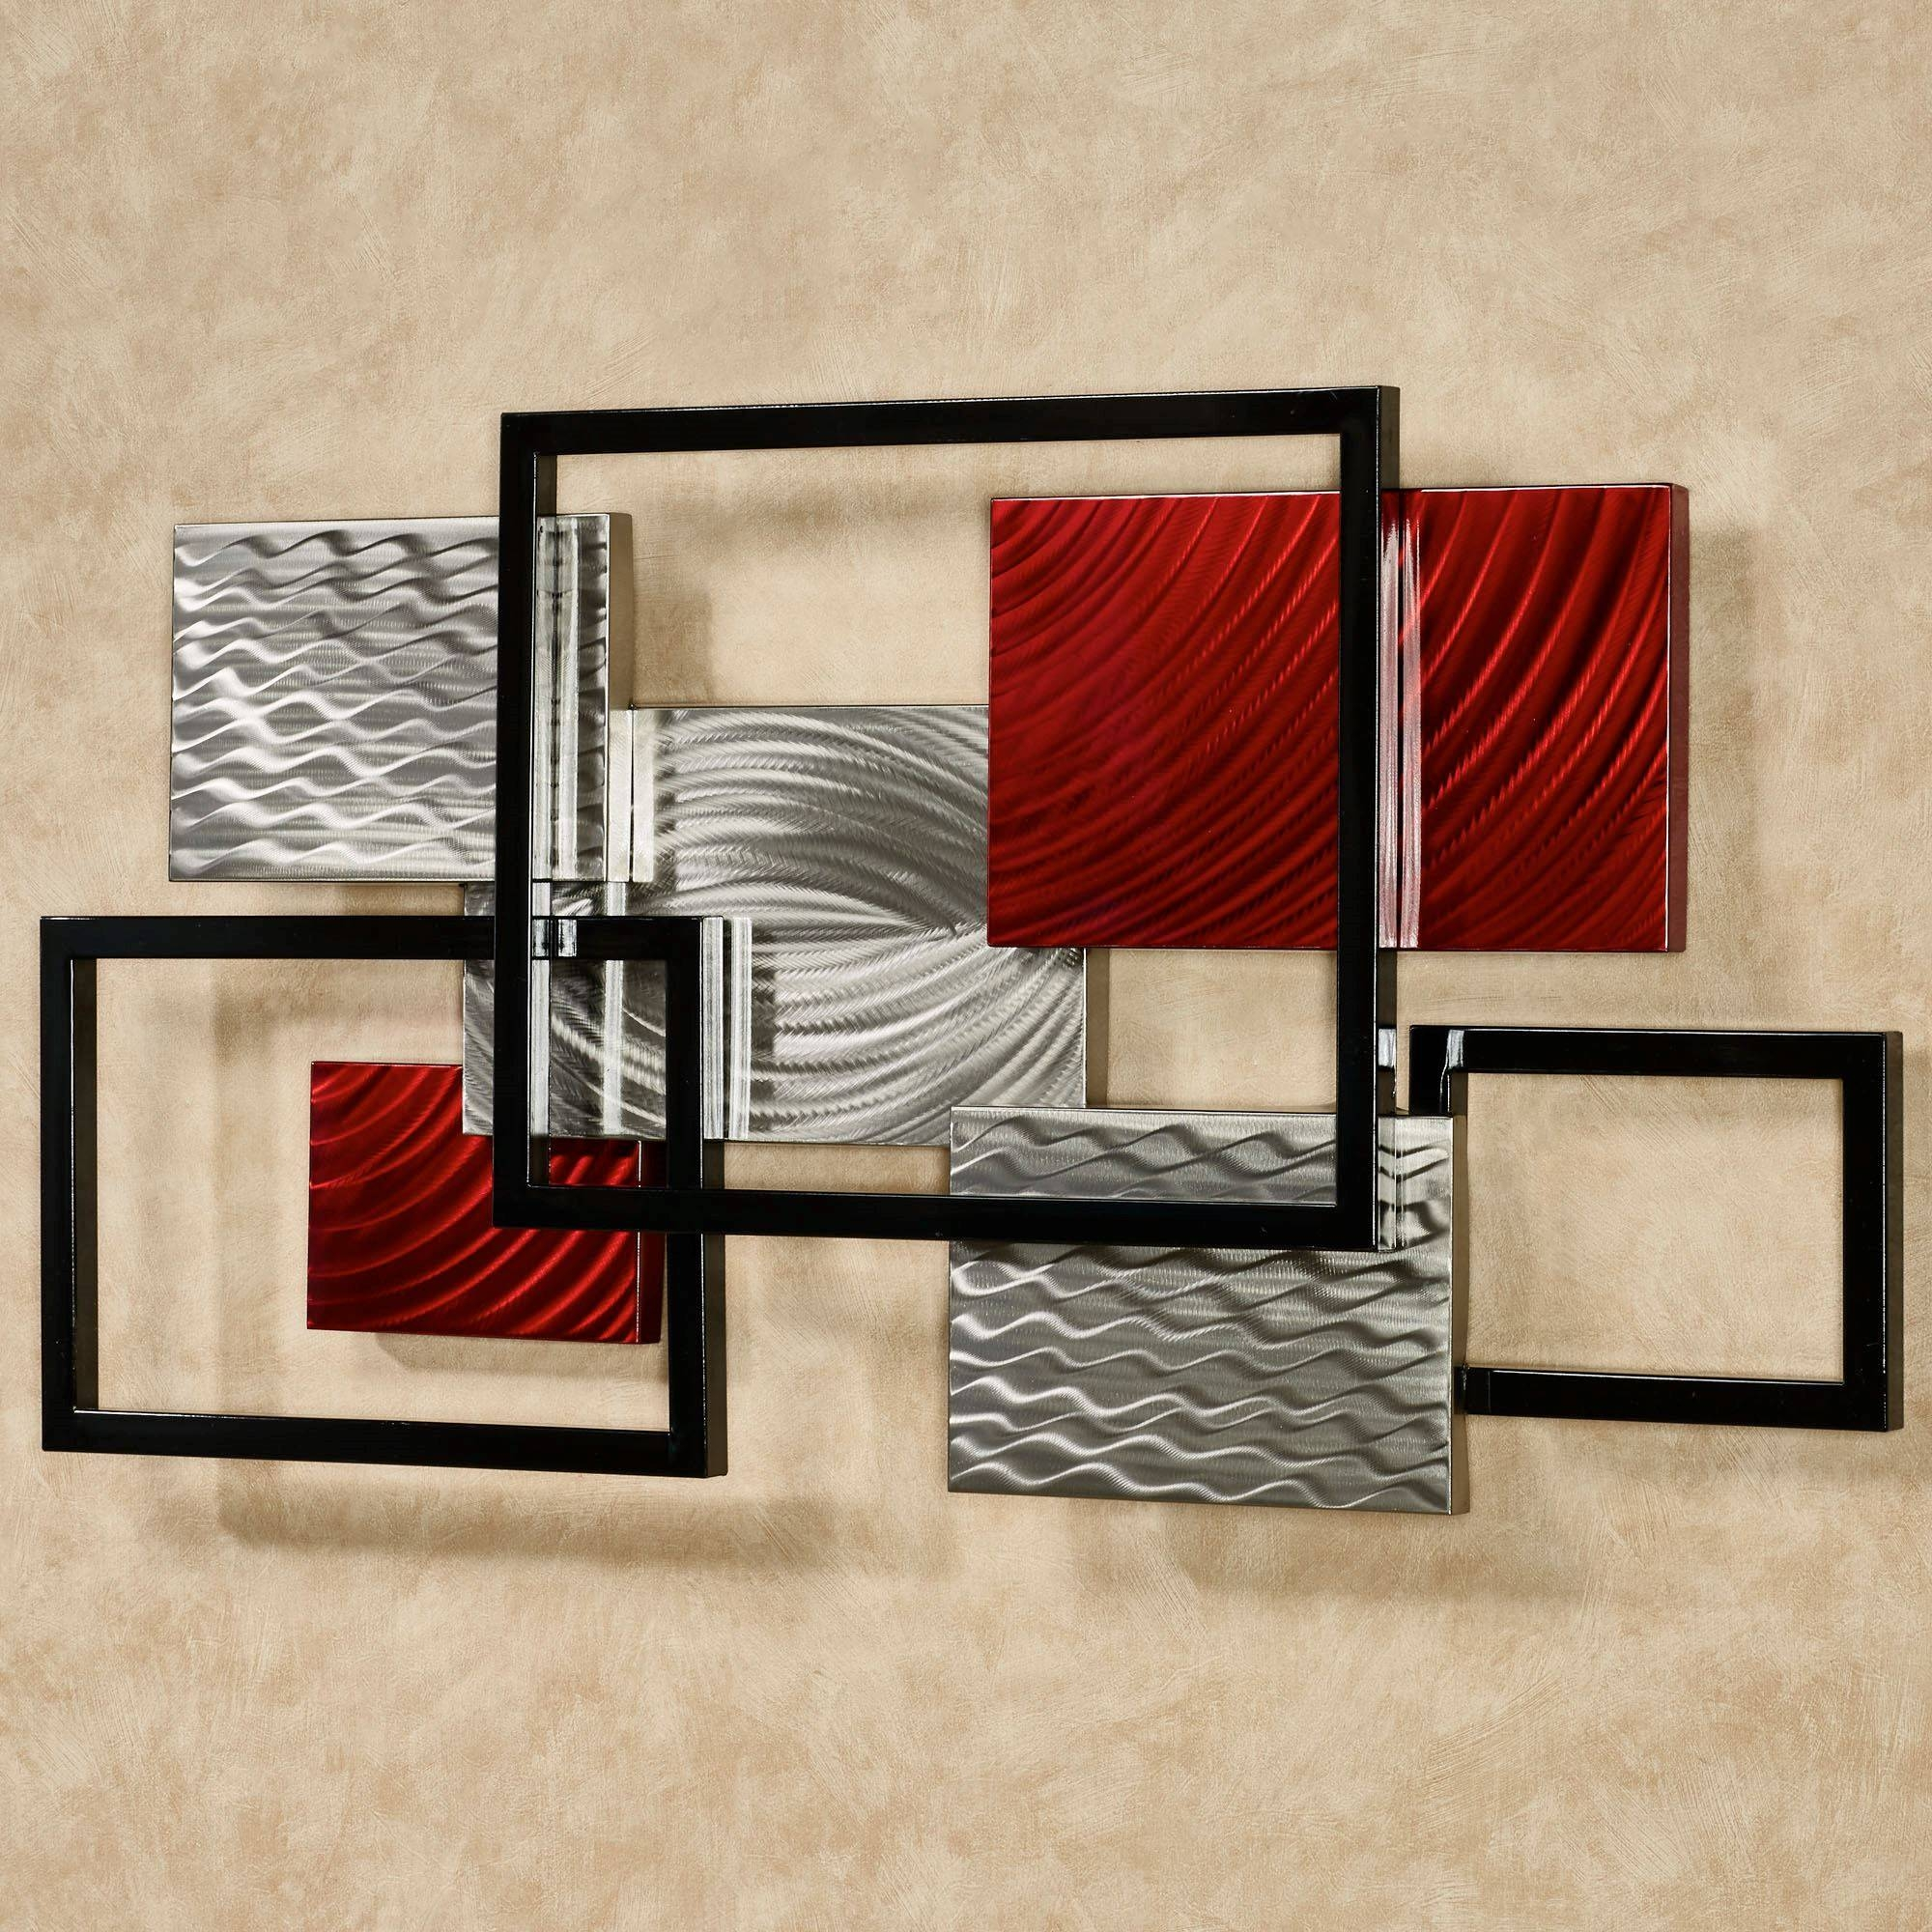 Epic Contemporary Metal Wall Art Sculpture M67 On Home Decoration Within Recent Contemporary Metal Wall Art Decor (View 7 of 20)